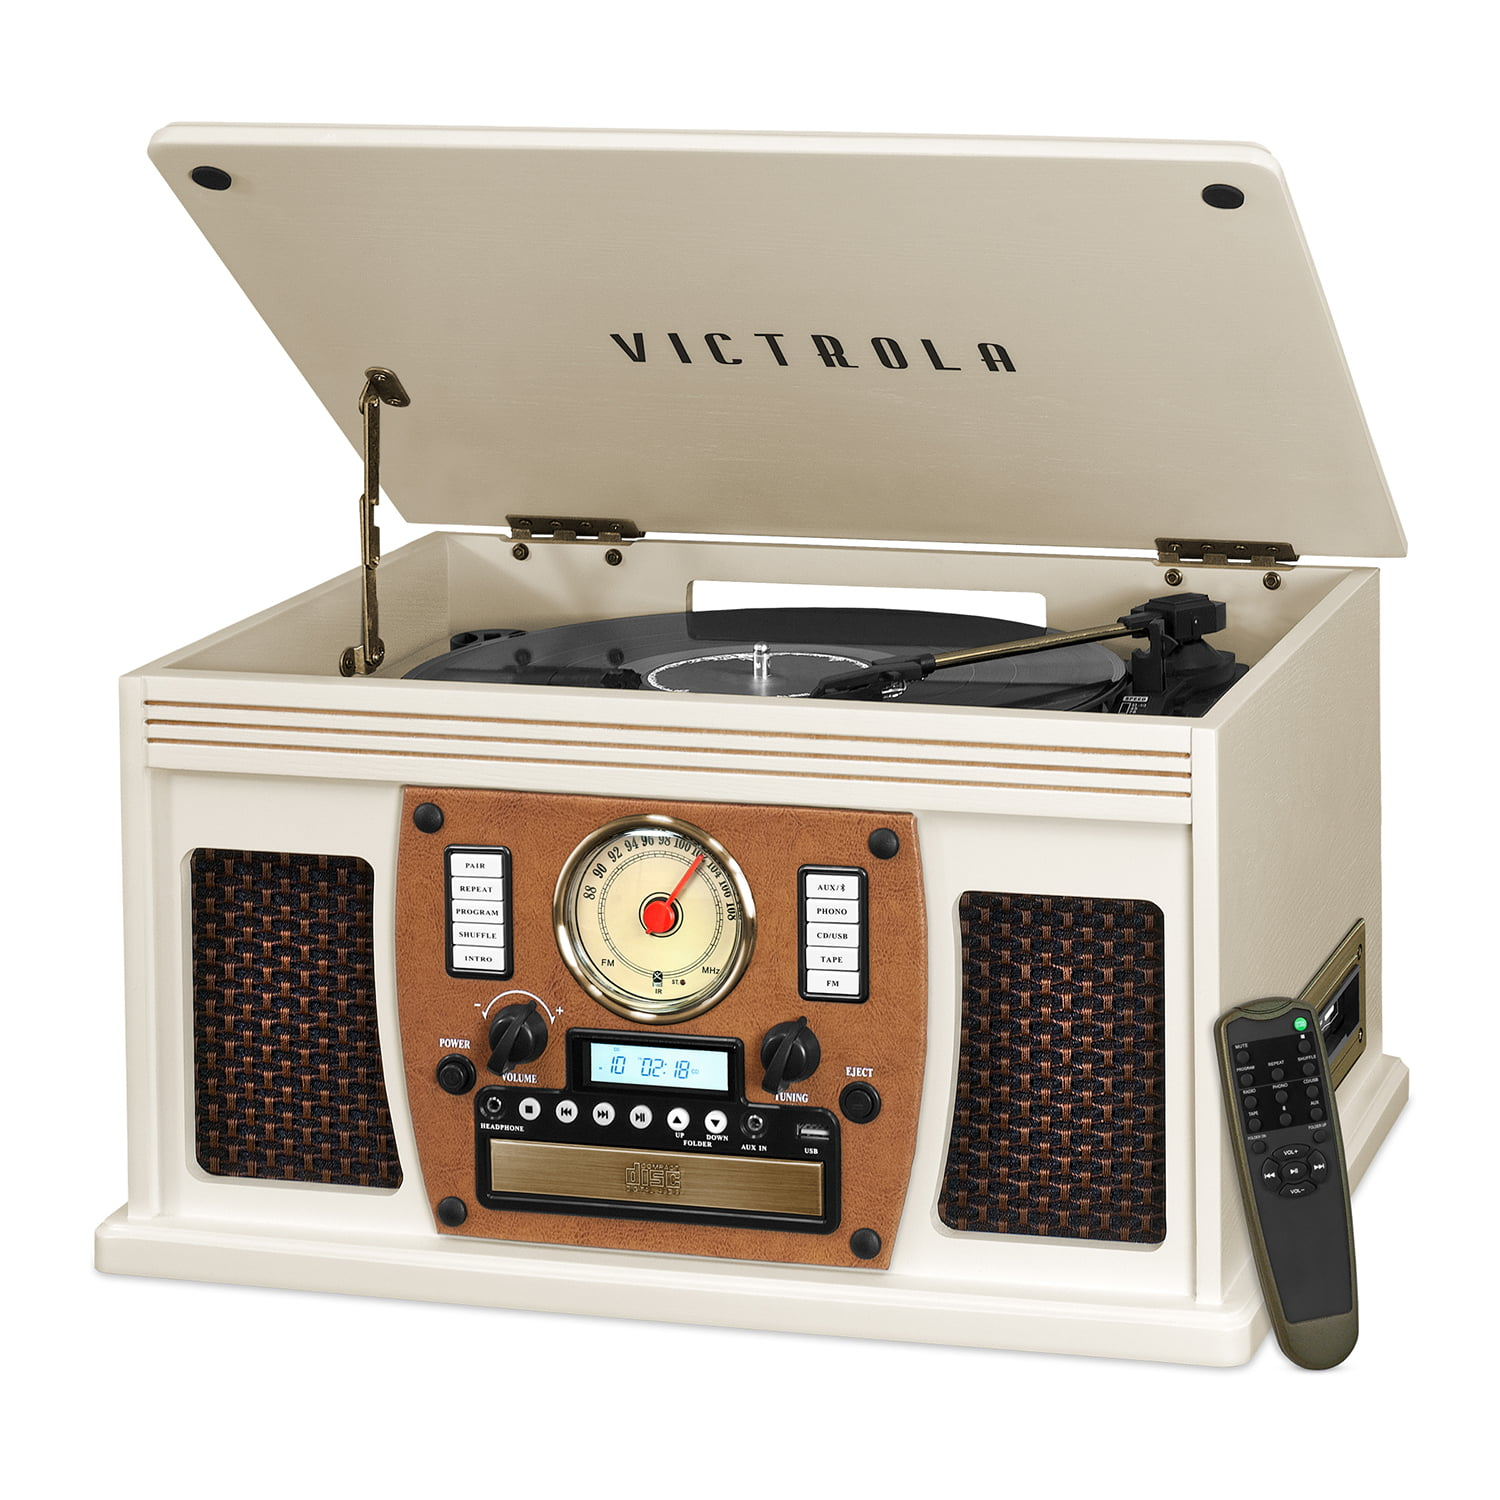 Victrola Wood 8-in-1 Nostalgic Bluetooth Record Player with USB Encoding and 3-speed Turntable - White